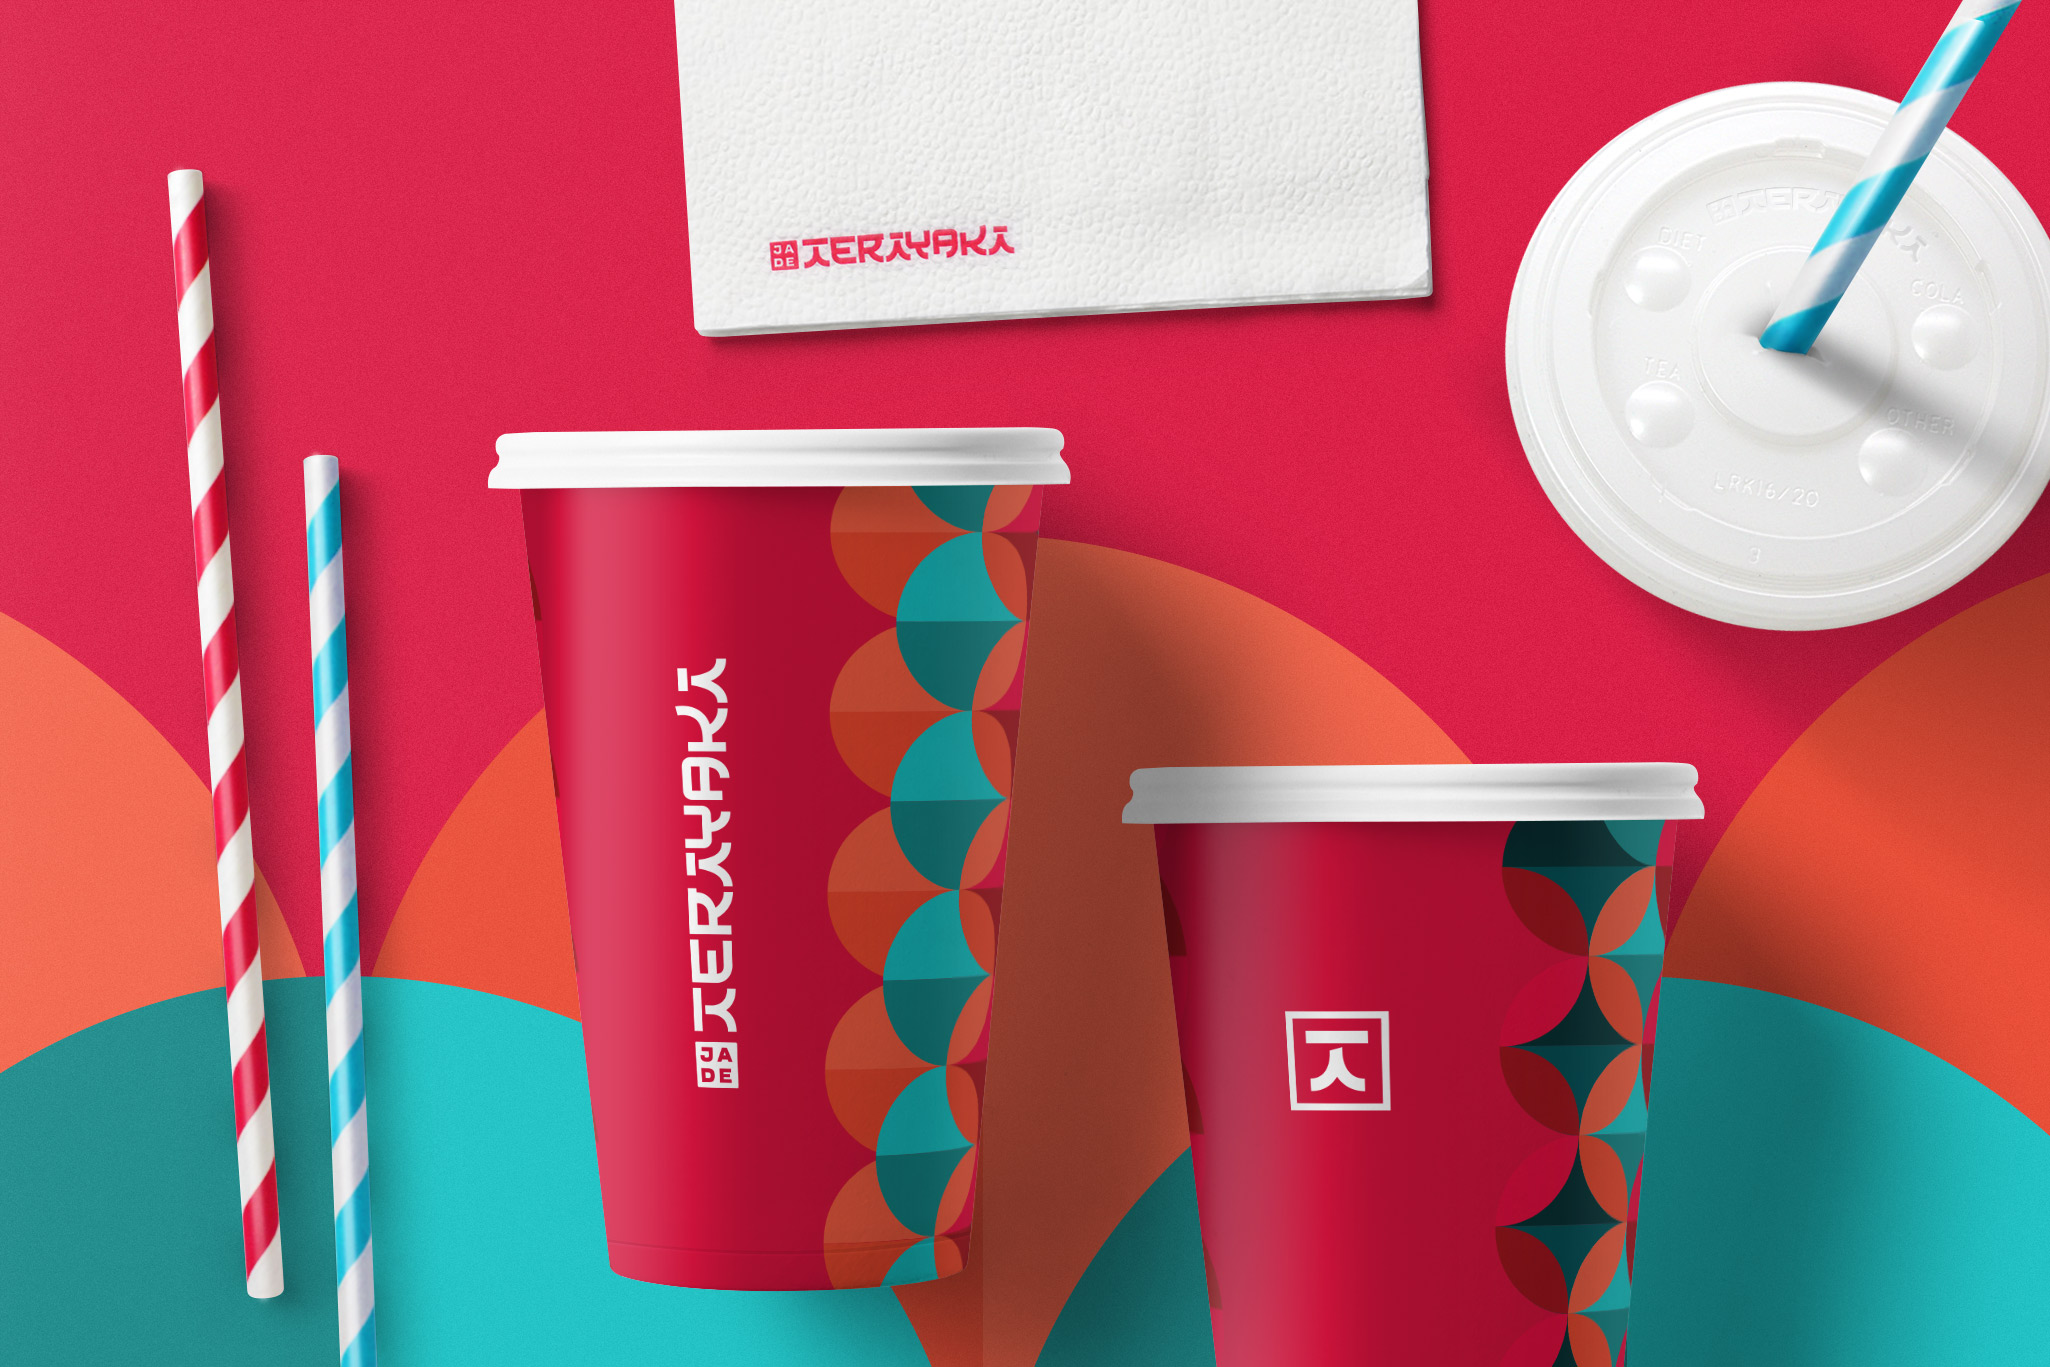 fellowmarks Jade Teriyaki Rebranding branded cups napkins